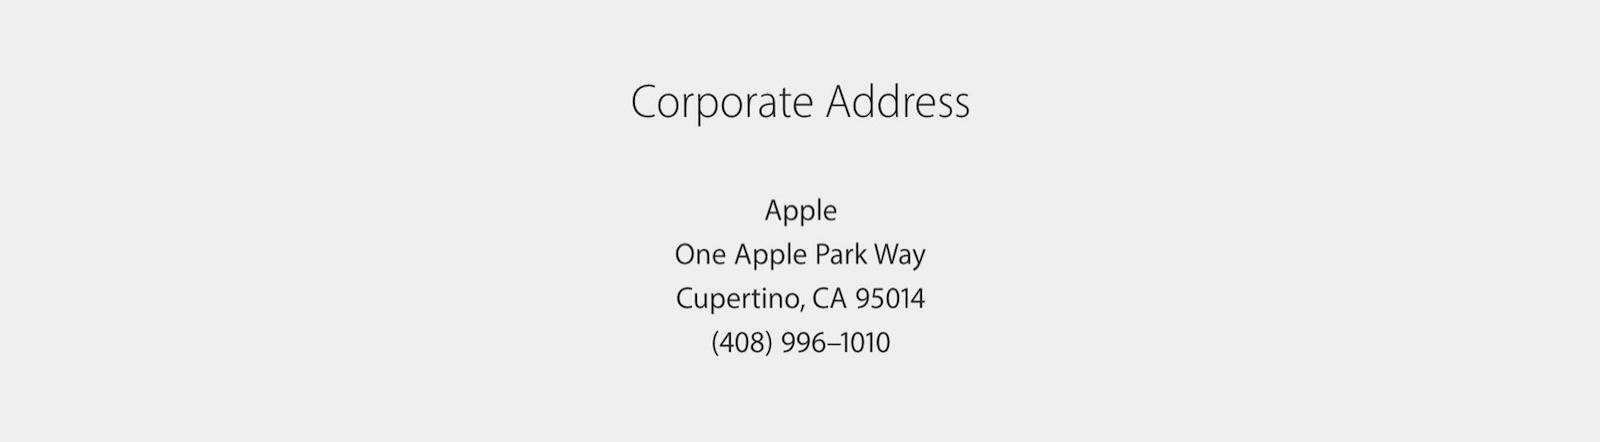 Apple-Corporate-Address.jpg